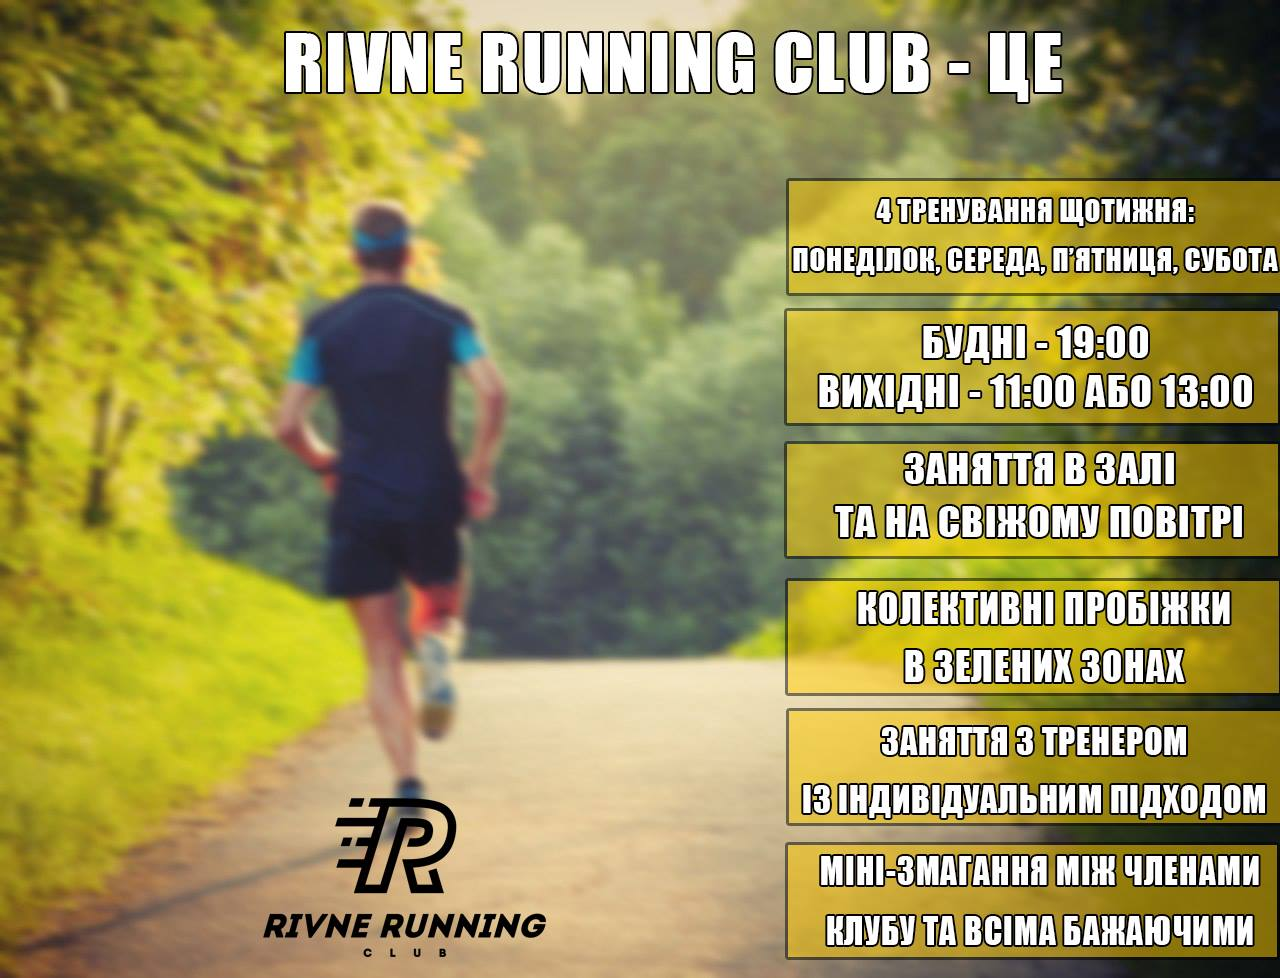 Trainings in Rivne and region: a selection of sites